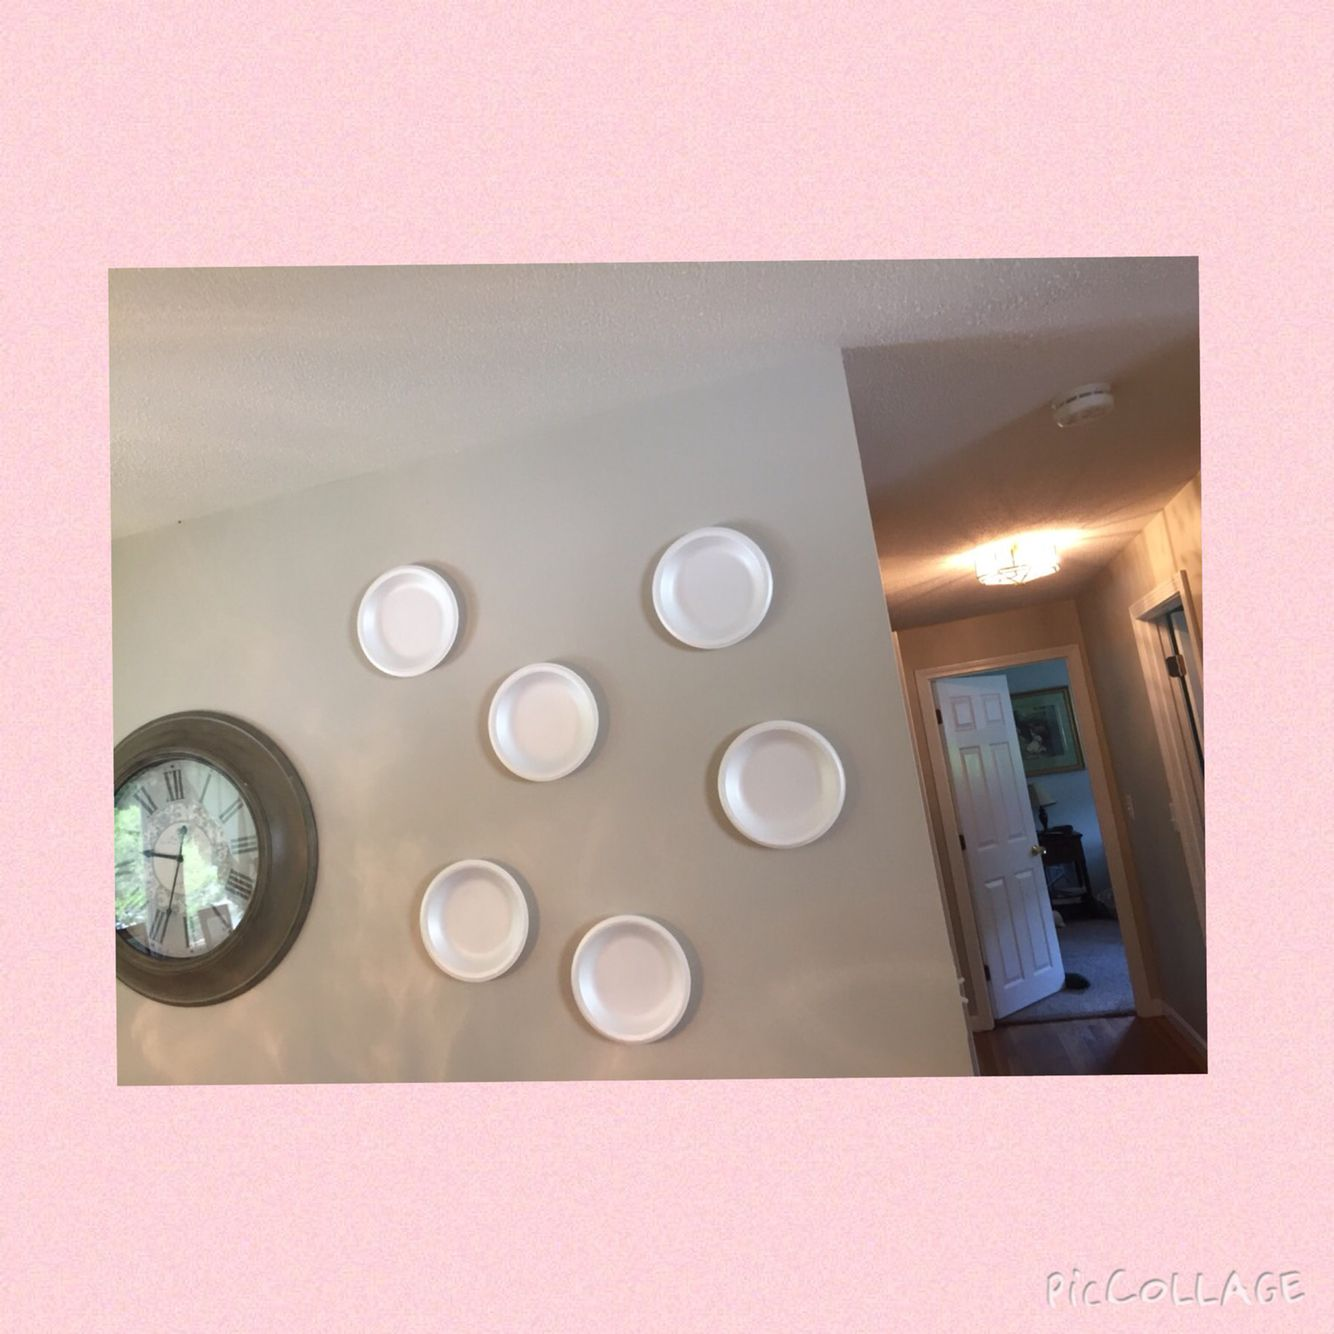 You Can Stick Paper Plates To The Wall Using Static Electricity By Just Rubbing Them Back